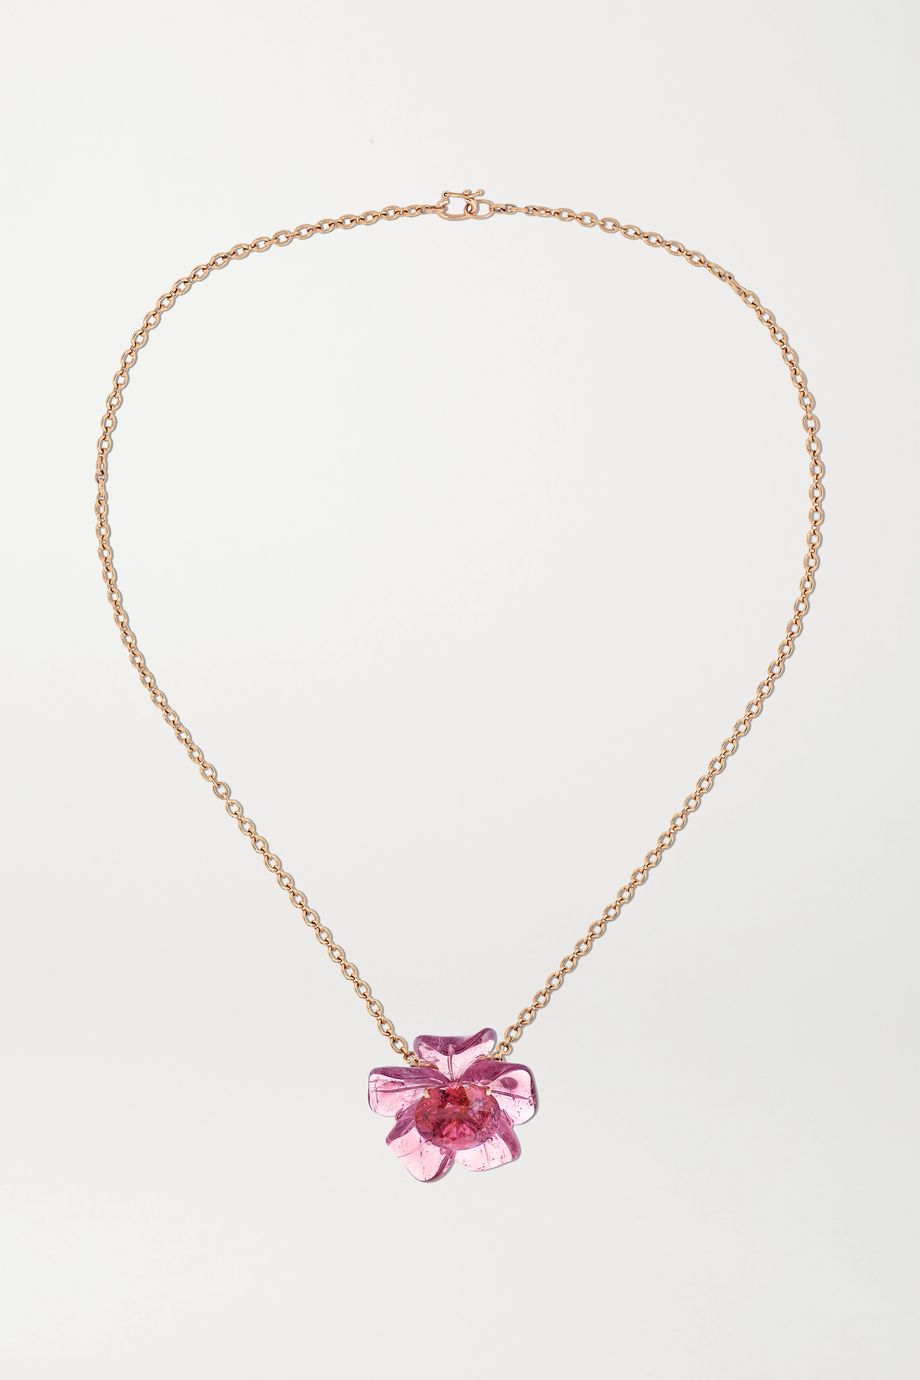 Irene Neuwirth Tropical Flower 18-karat rose gold tourmaline necklace